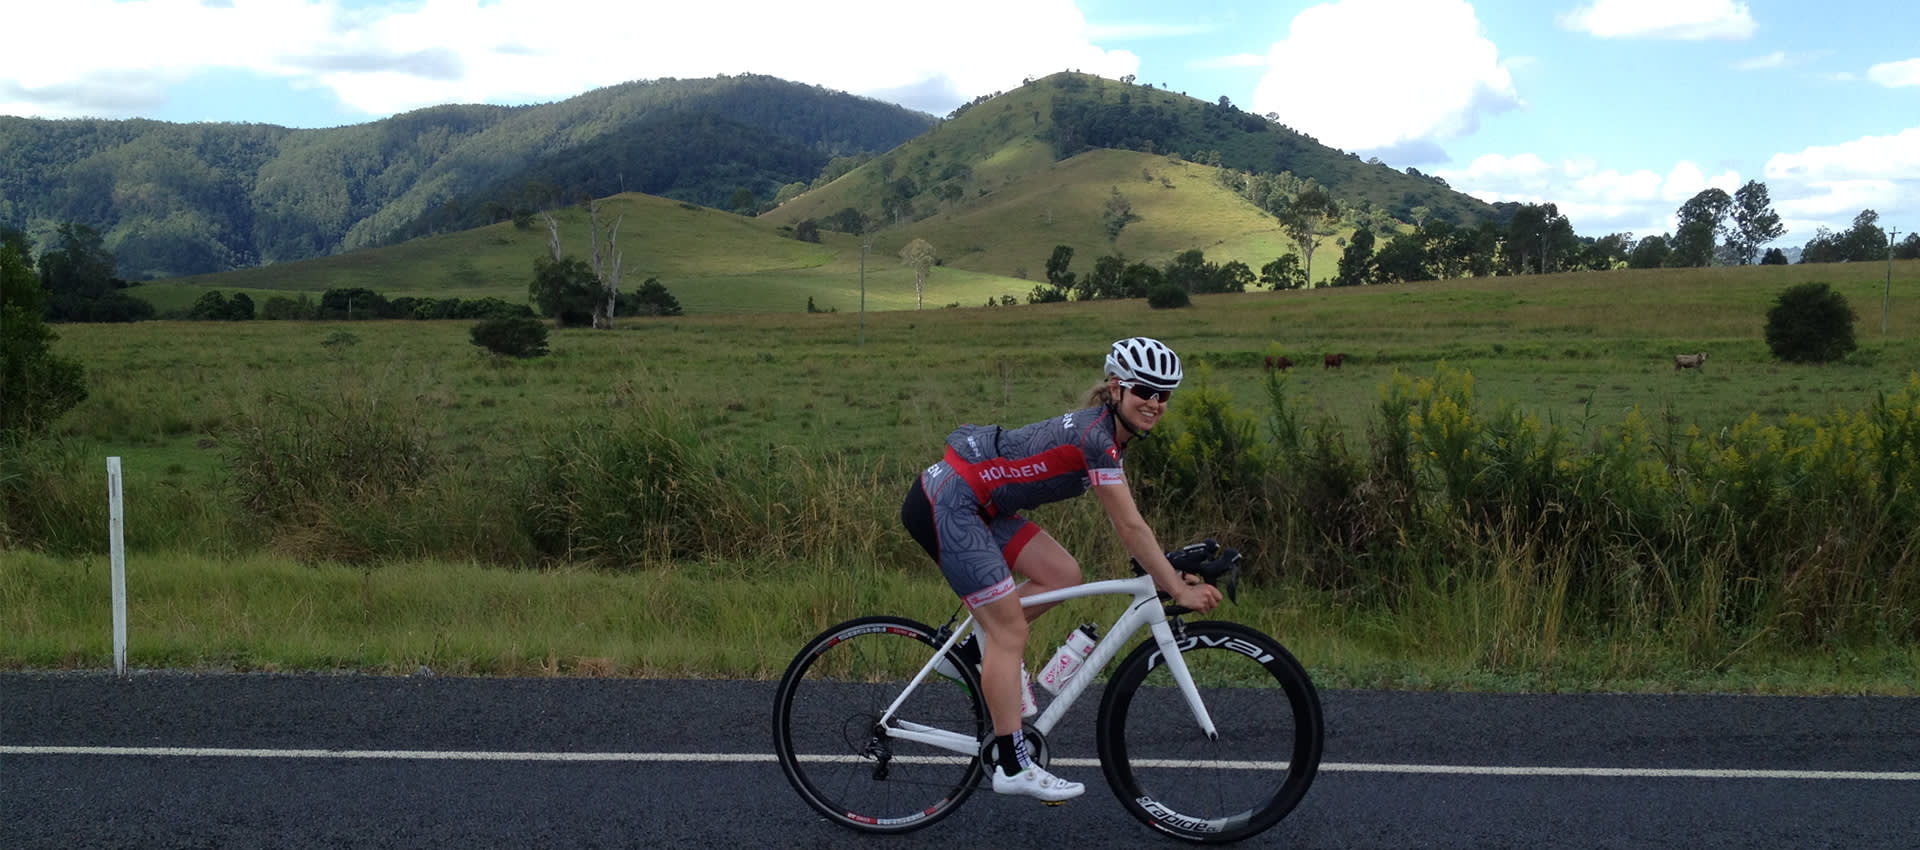 Cyclist Lucy Coldwell's guide to the Sunshine Coast